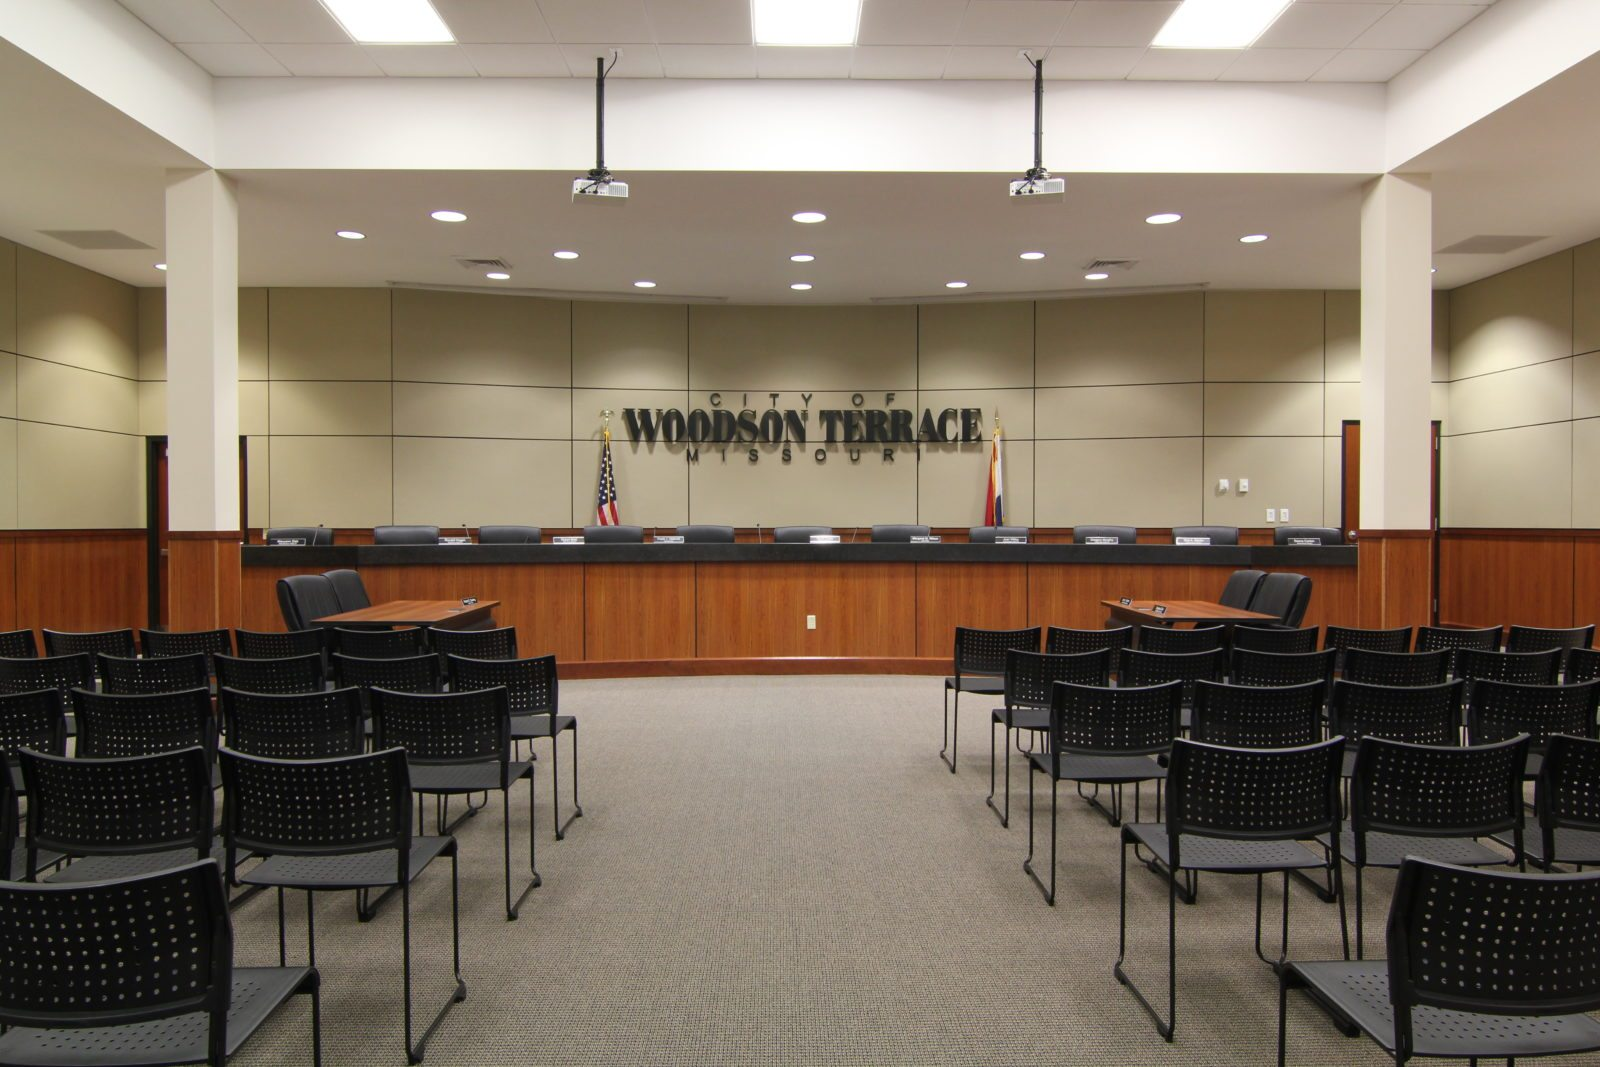 City of Woodson Terrace - City Hall & Municipal Court